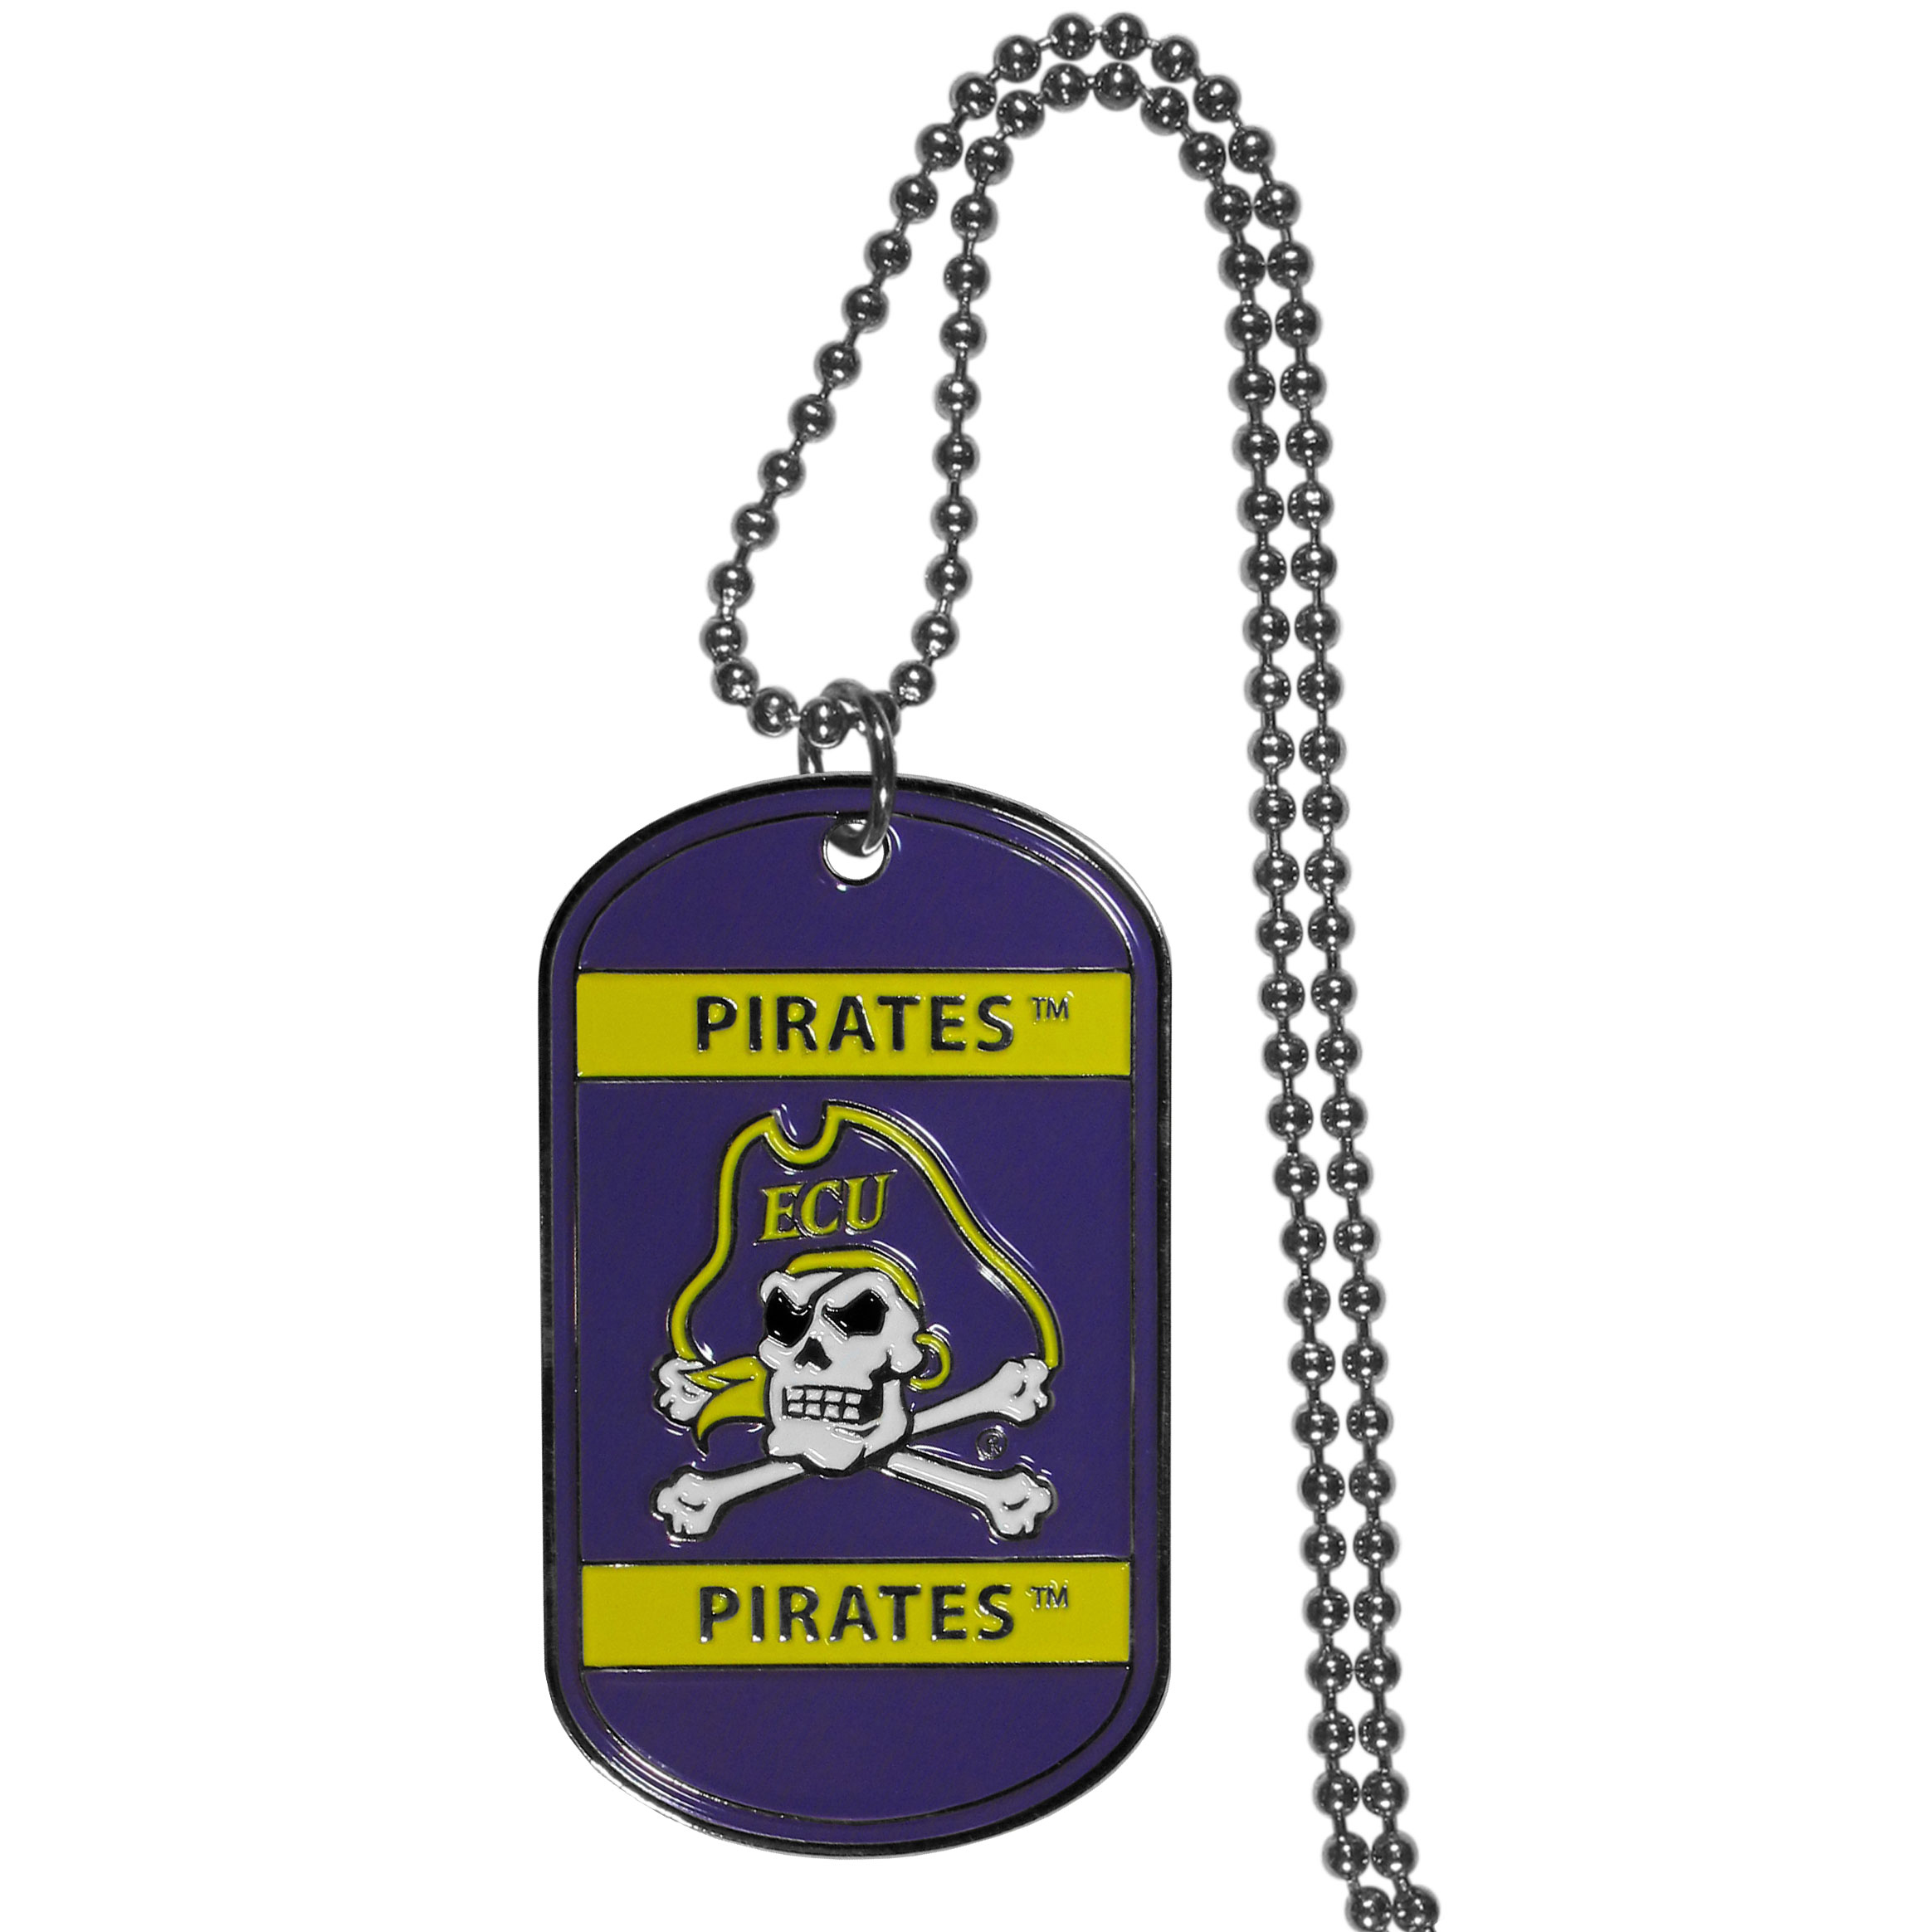 East Carolina Pirates Tag Necklace - Expertly crafted East Carolina Pirates tag necklaces featuring fine detailing and a hand enameled finish with chrome accents. 26 inch ball chain.